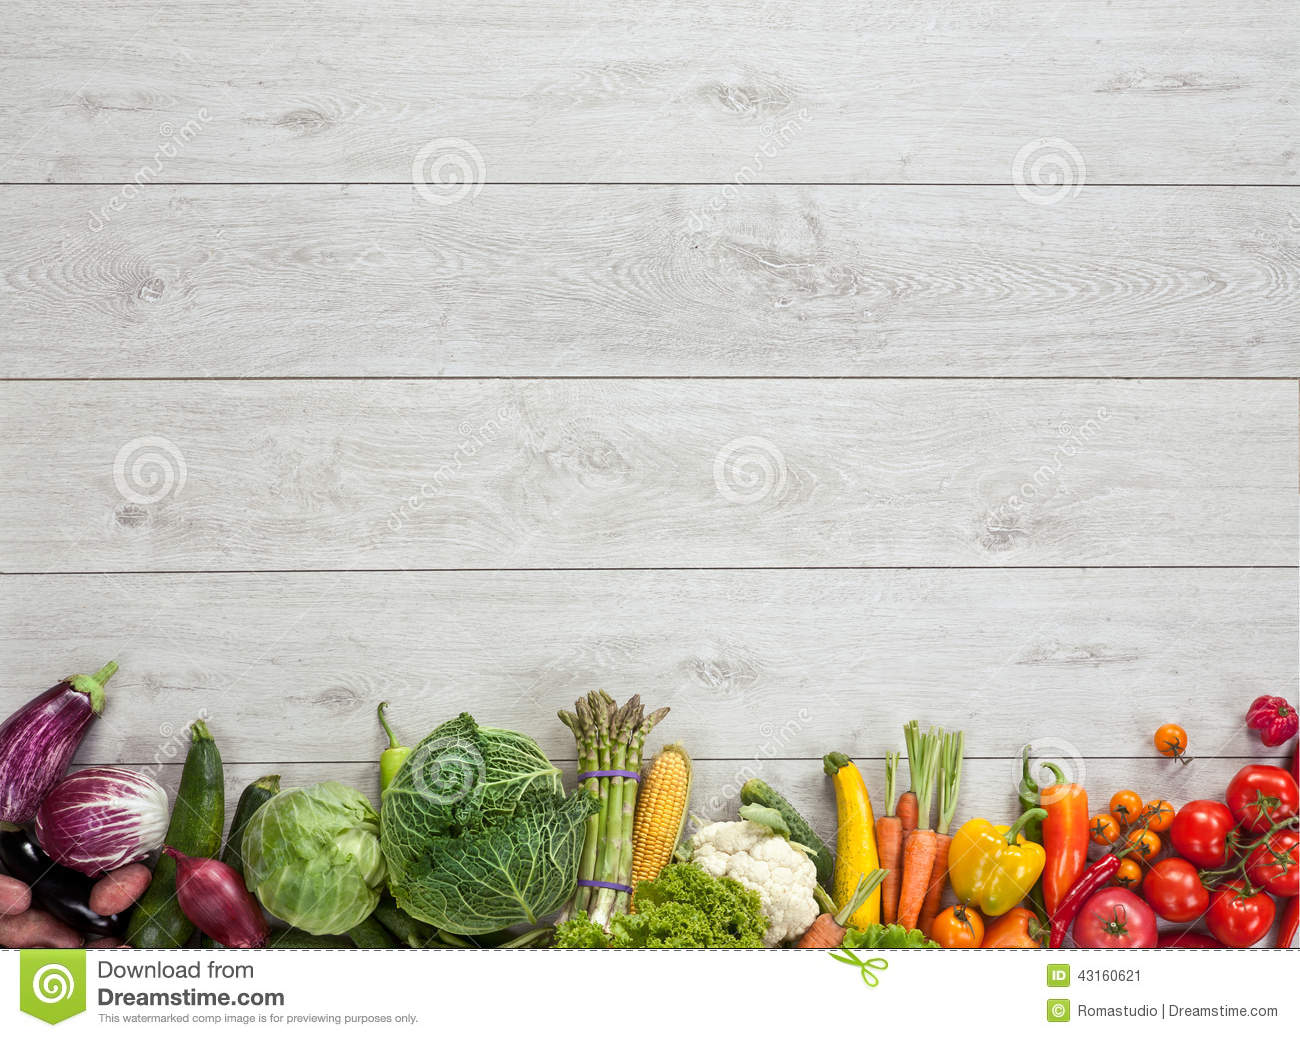 Healthy Food Background Stock Photo - Image: 43160621